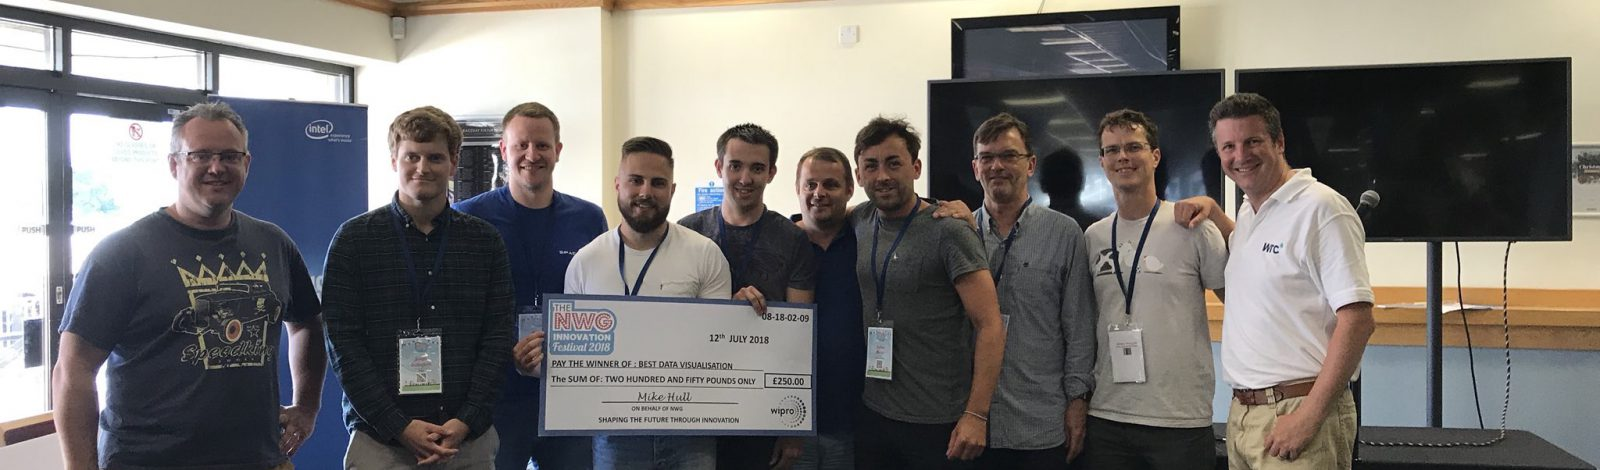 Clancy Docwra win Northumbrian Water Leakage Hackathon Award - Clancy Docwra